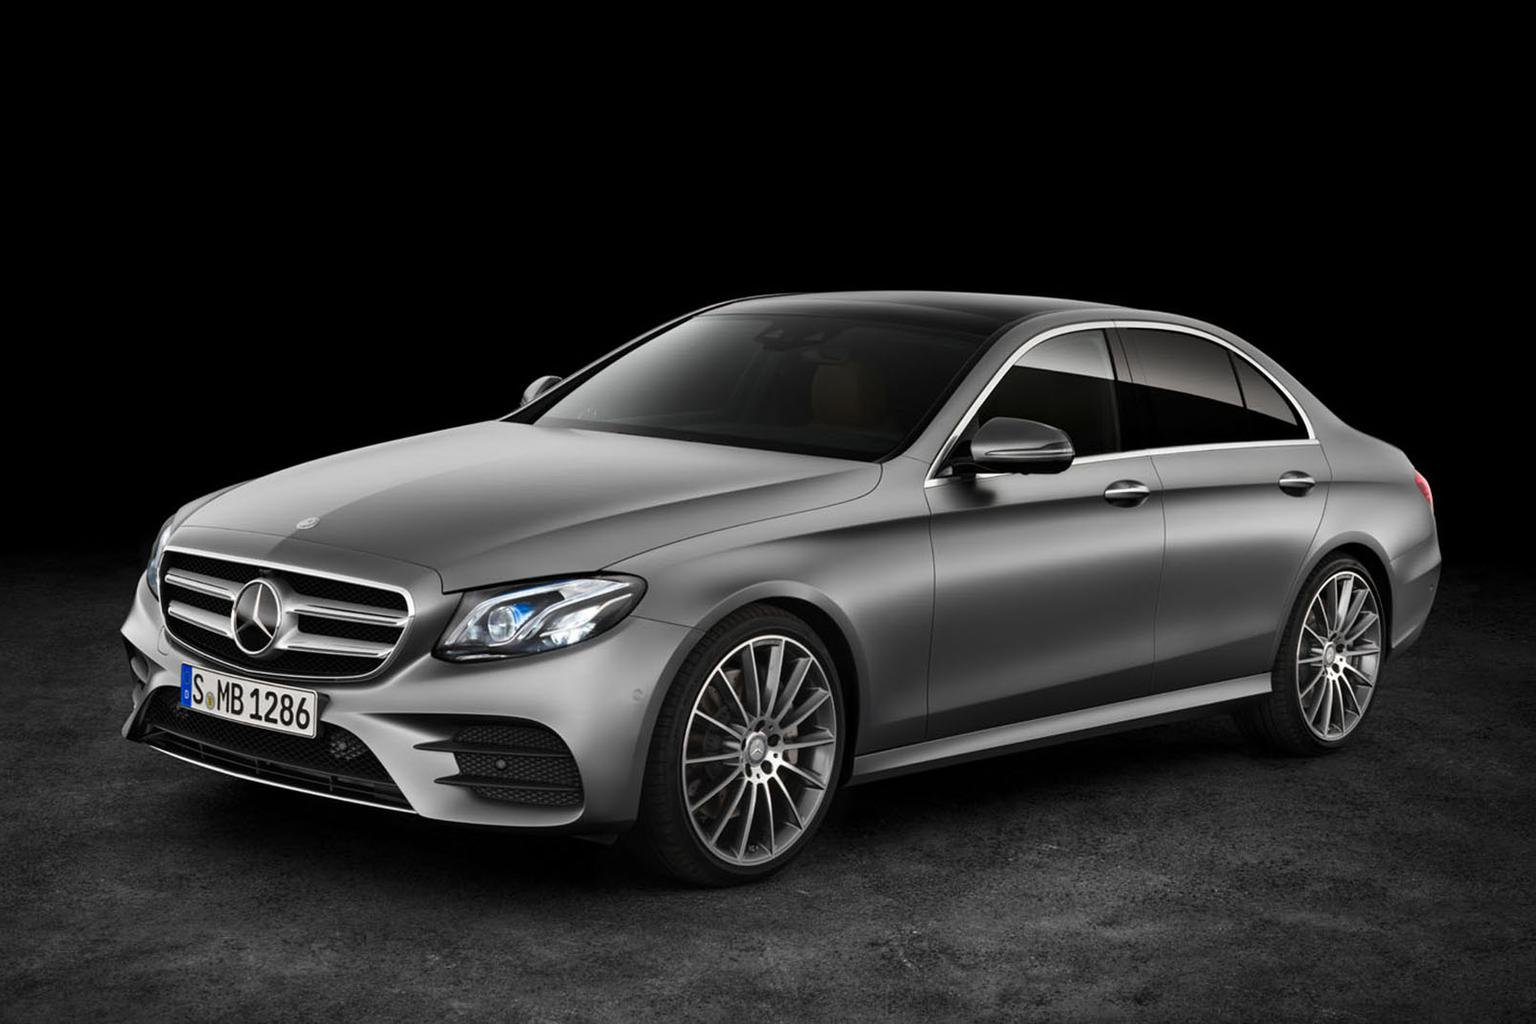 Revealed: pictures and engine details for new Mercedes-Benz E-Class